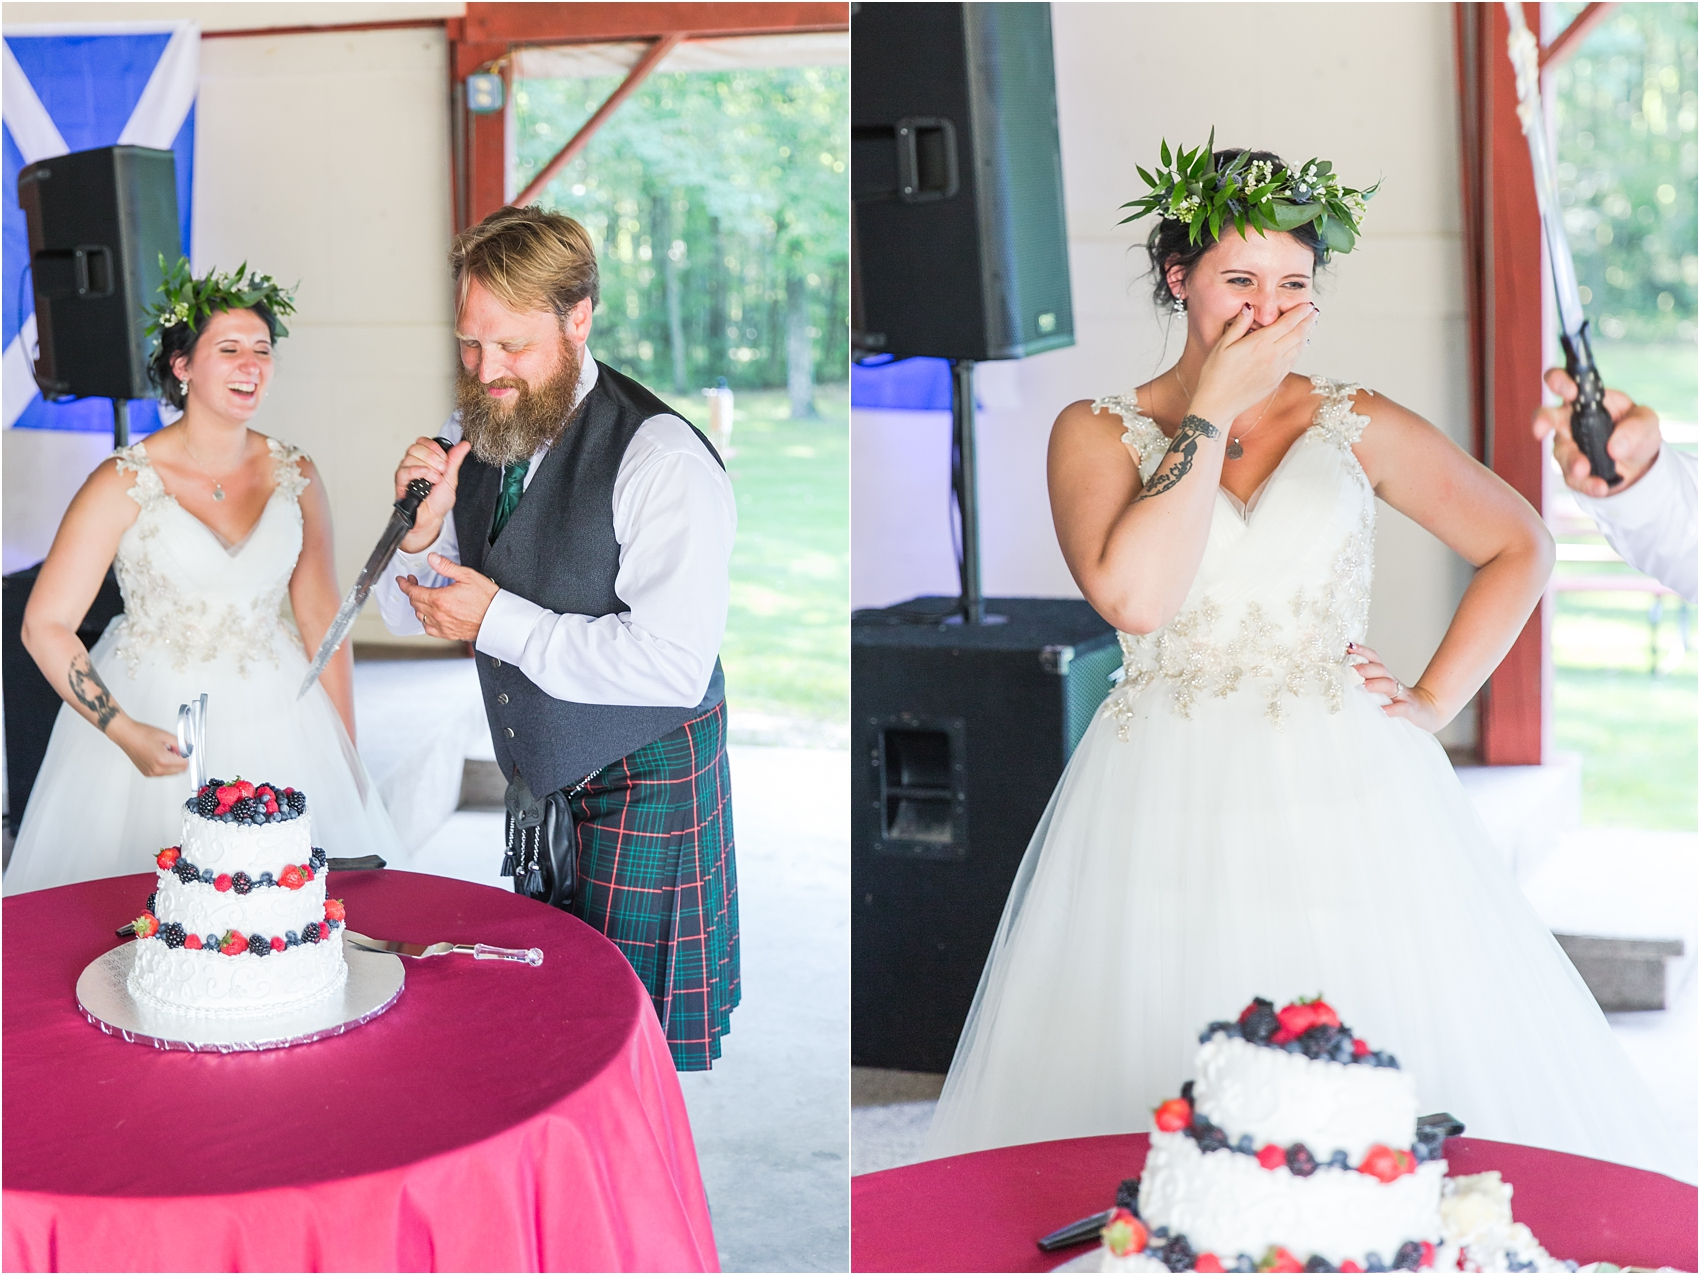 scottish-inspired-wedding-photos-in-the-country-in-port-sanilac-michigan-by-courtney-carolyn-photography_0040.jpg